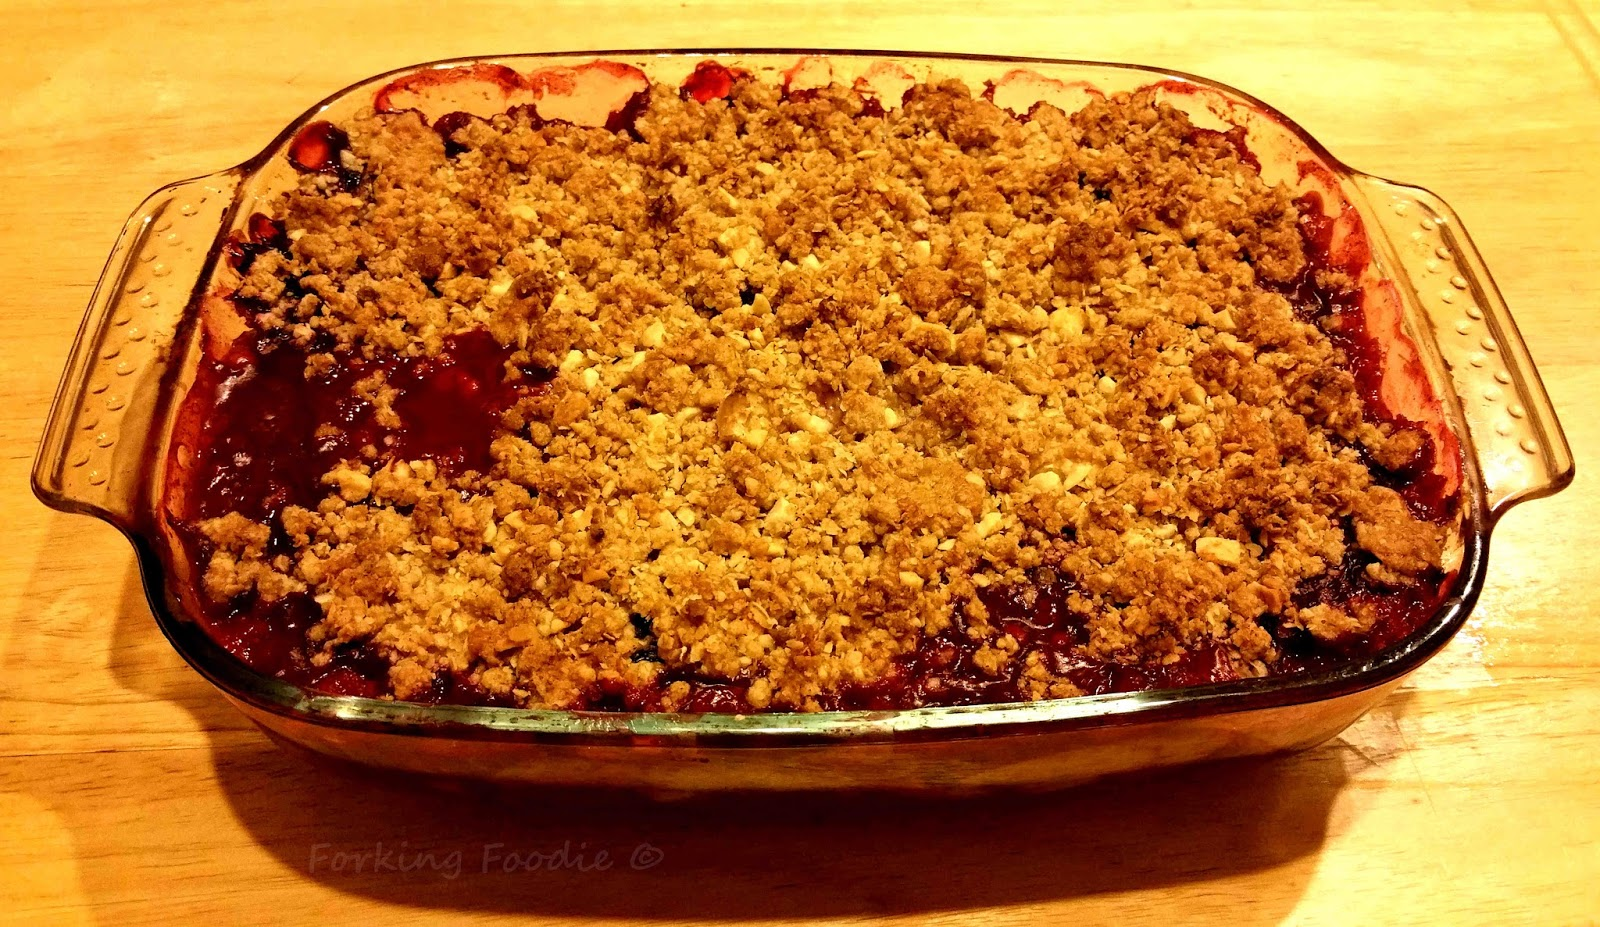 forking foodie apple and blackberry flapjack crumble with custard includes thermomix method. Black Bedroom Furniture Sets. Home Design Ideas